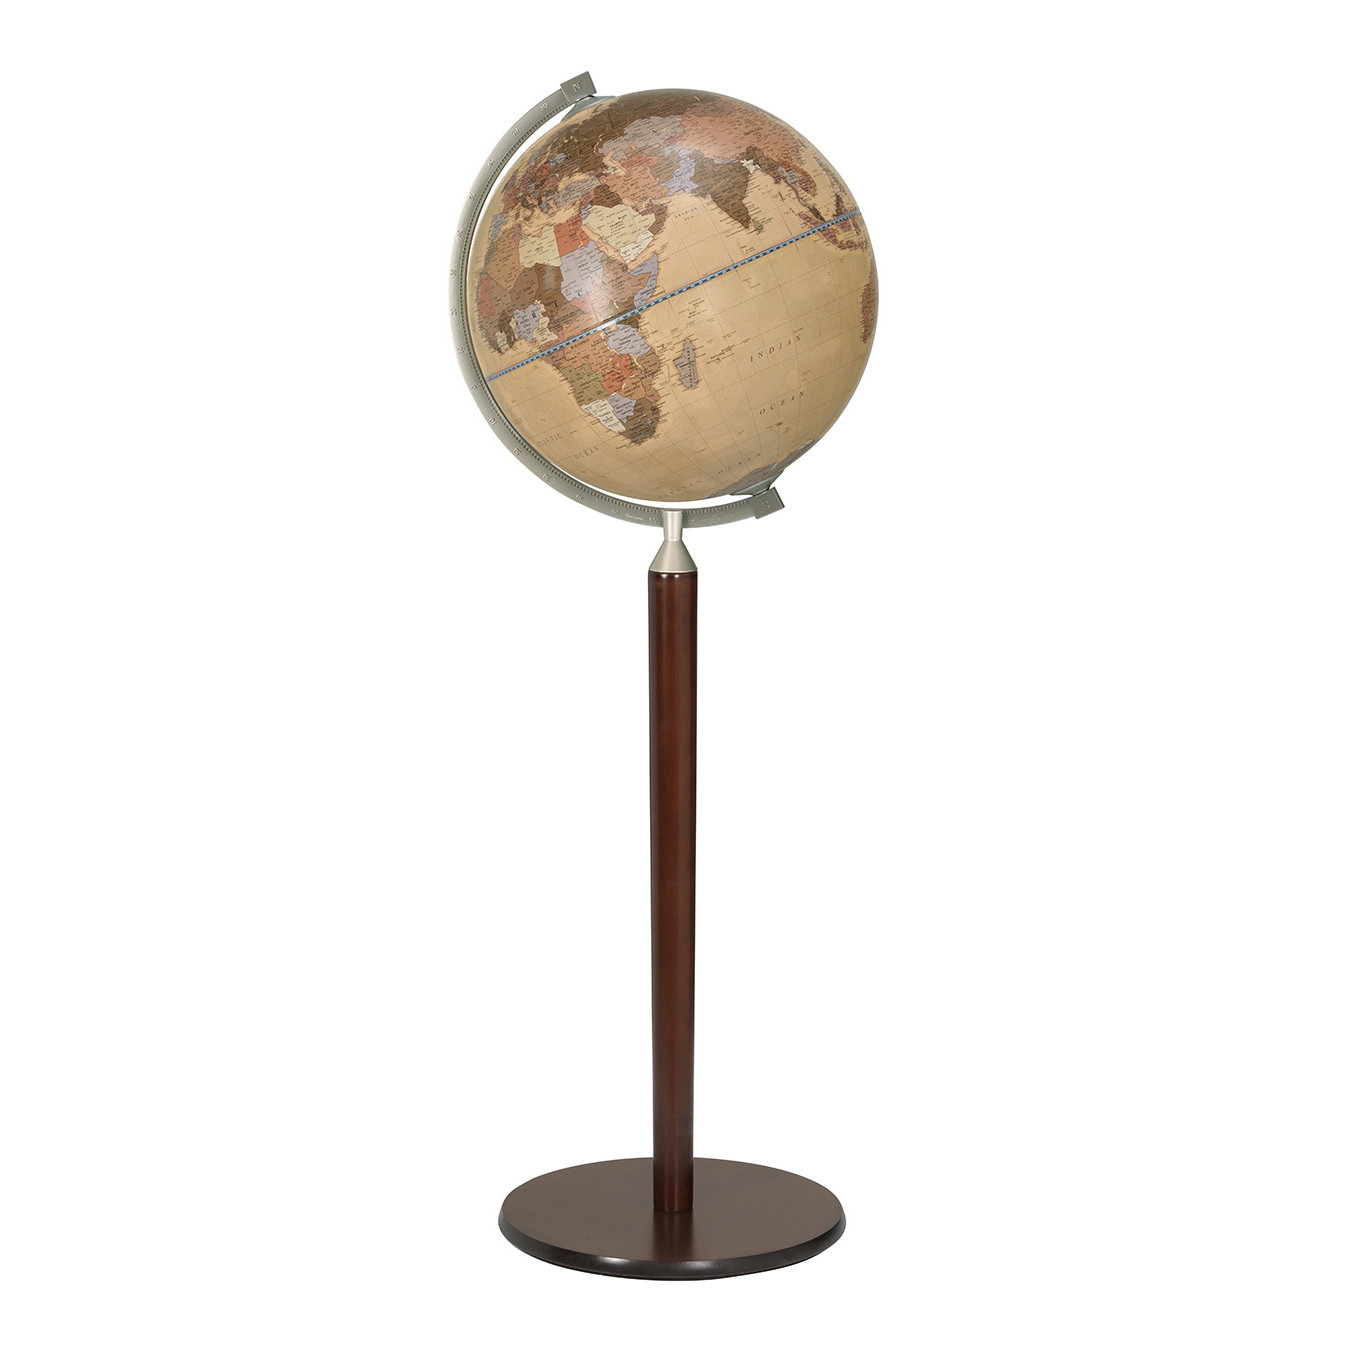 Vasco da Gama Antique Globe